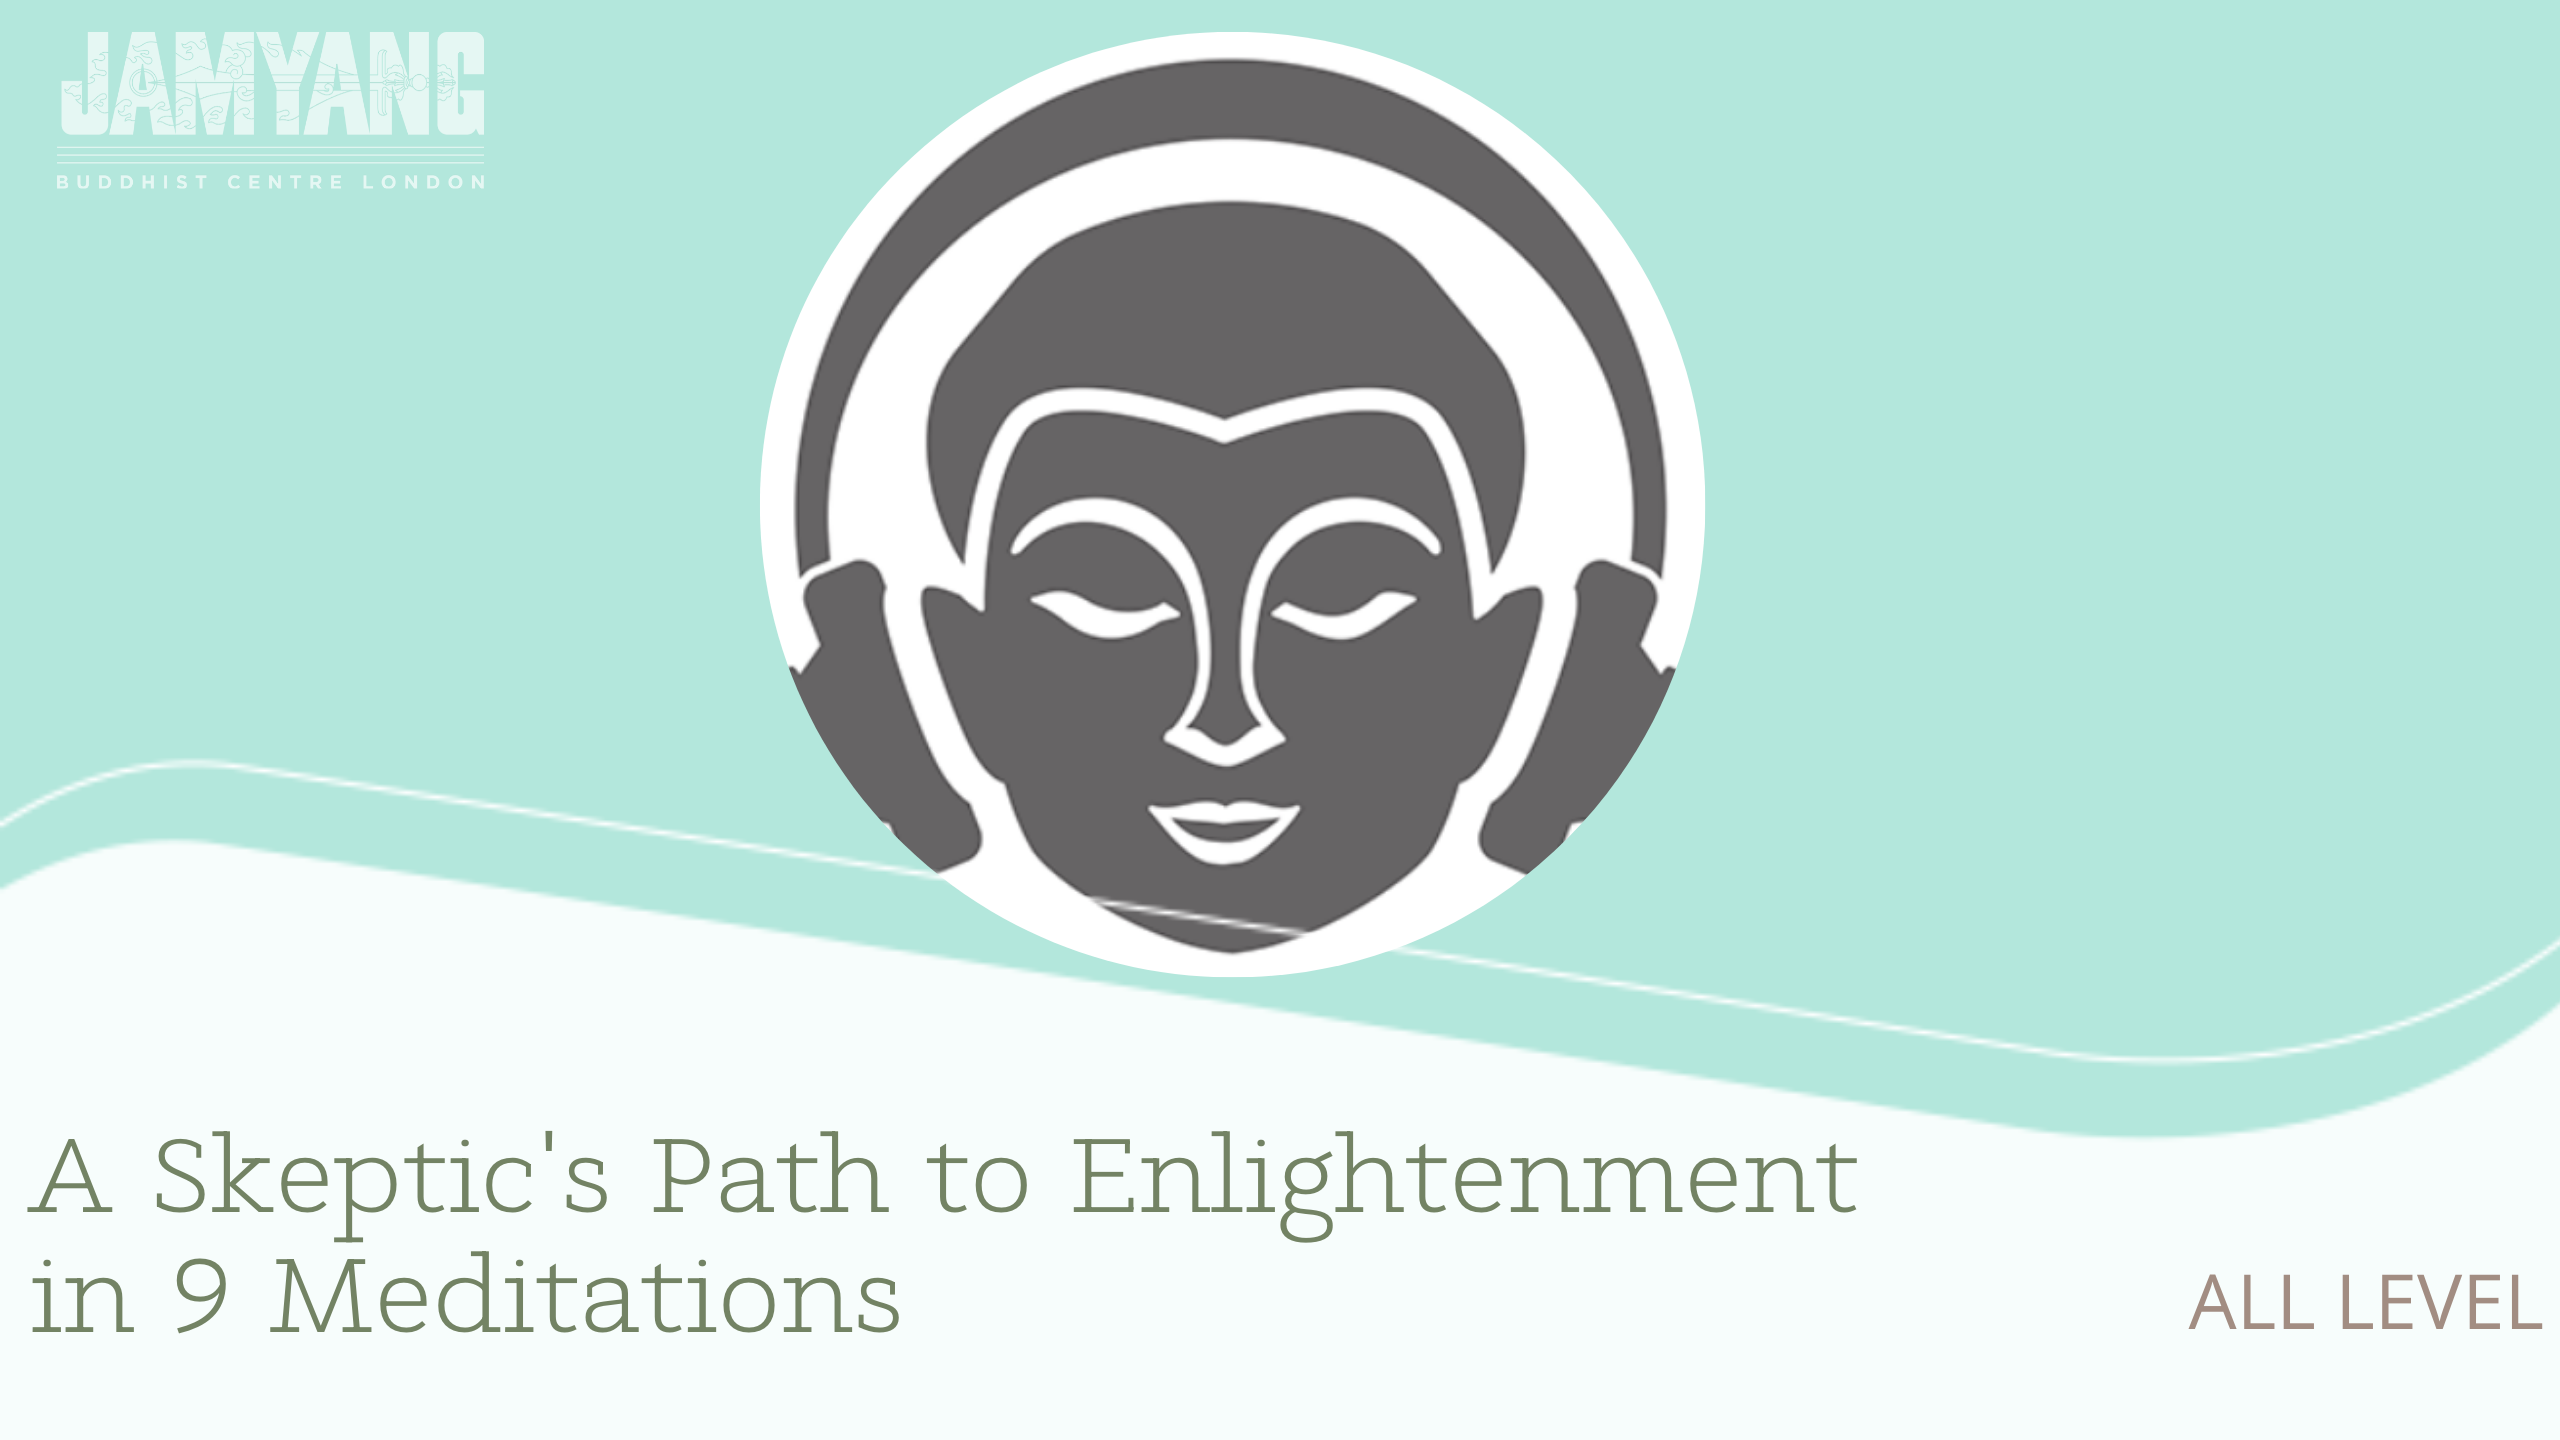 Skeptic's Path to Enlightenment